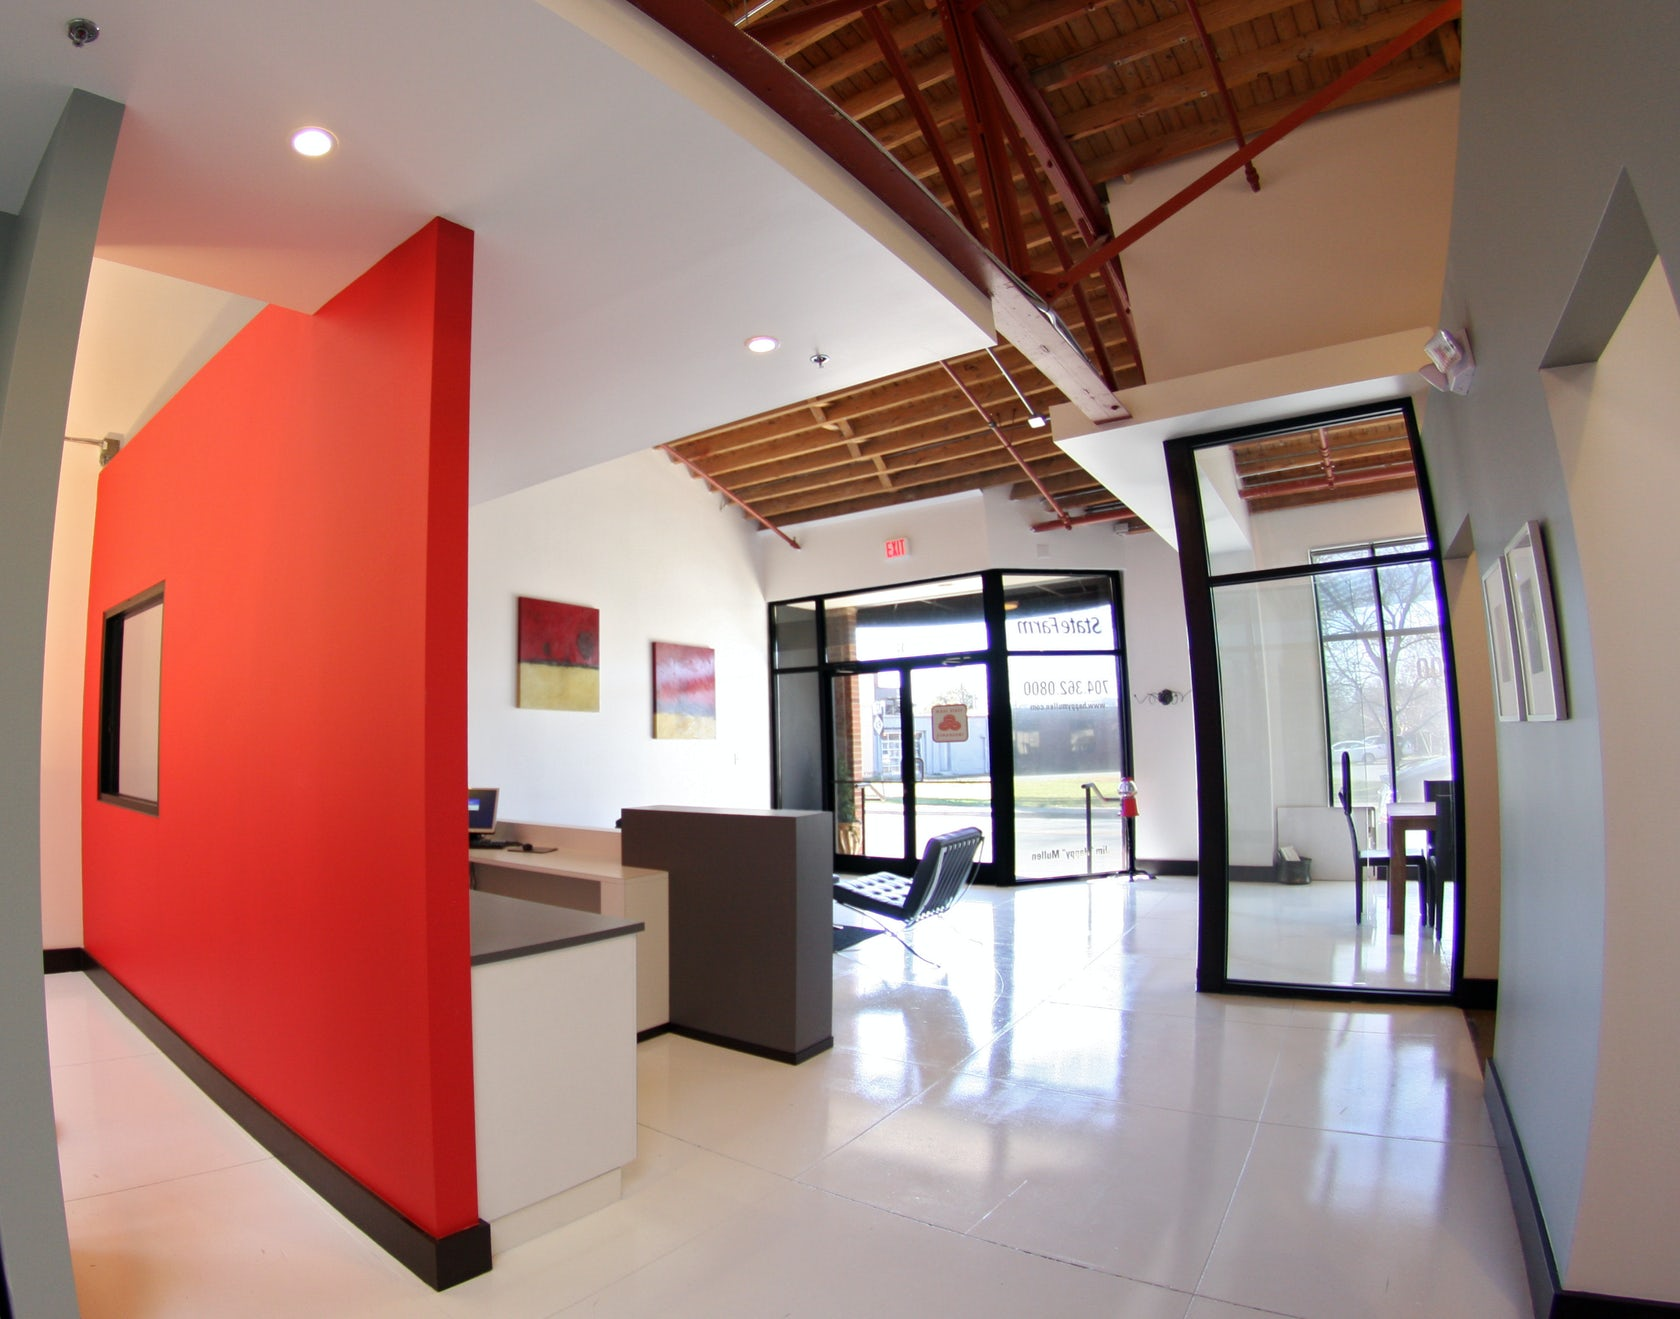 State farm architizer for Interior design agency new york